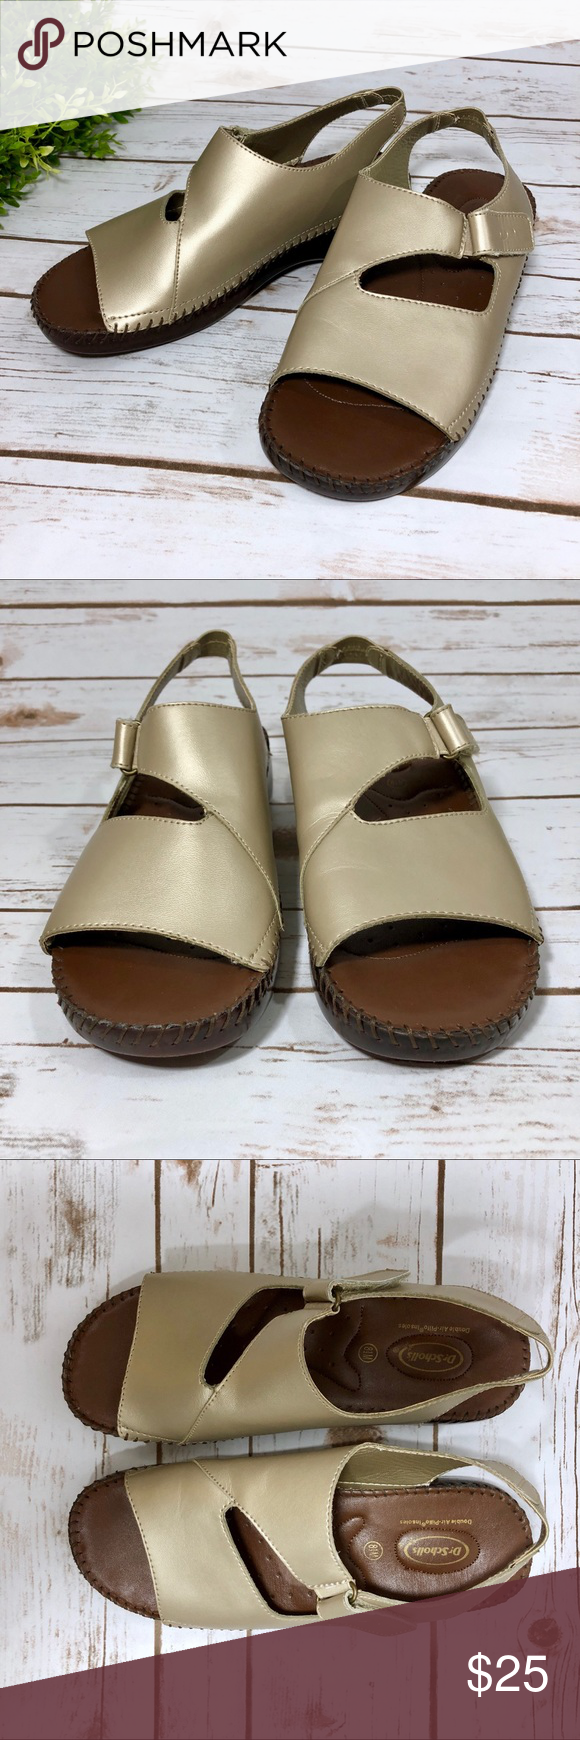 1fa959ce3d4e Dr. Scholl s Gold Leather Nina Orthopedic Sandals Dr Scholls gold tan  colored leather sandals in the Nina style. Size women s 8.5.